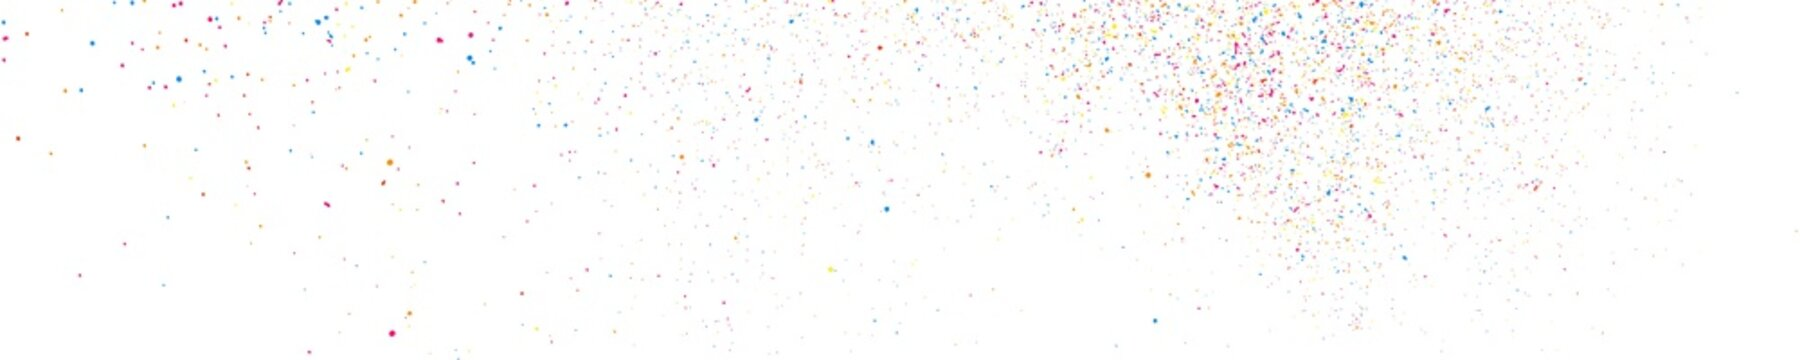 Abstract Explosion of Confetti. Colorful Grainy Texture Isolated on White Panoramic Background. Colored Stains and Blots. Wide Horizontal Long Banner For Site. Illustration, EPS 10.